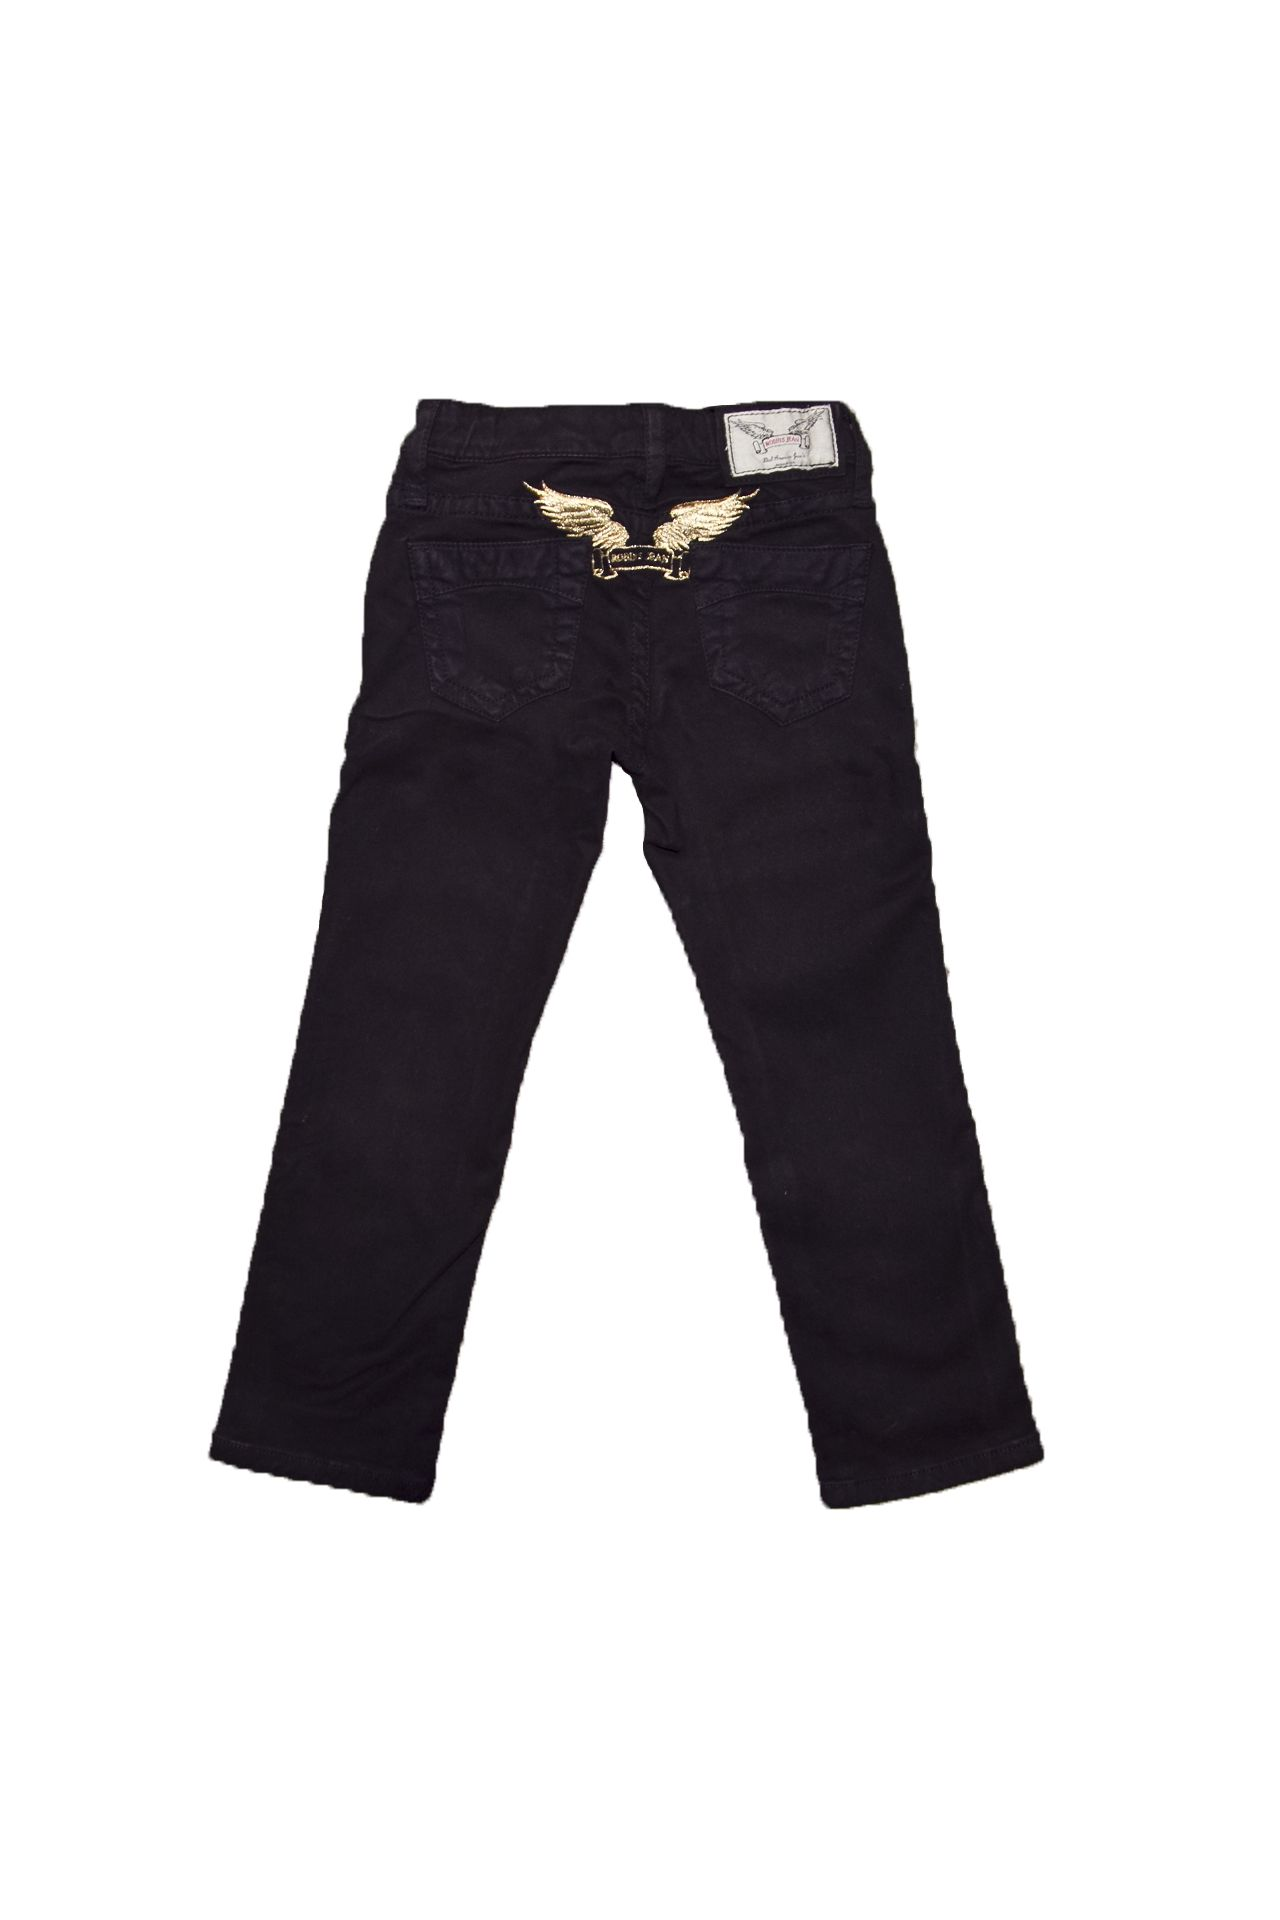 KID PANTS BLACK